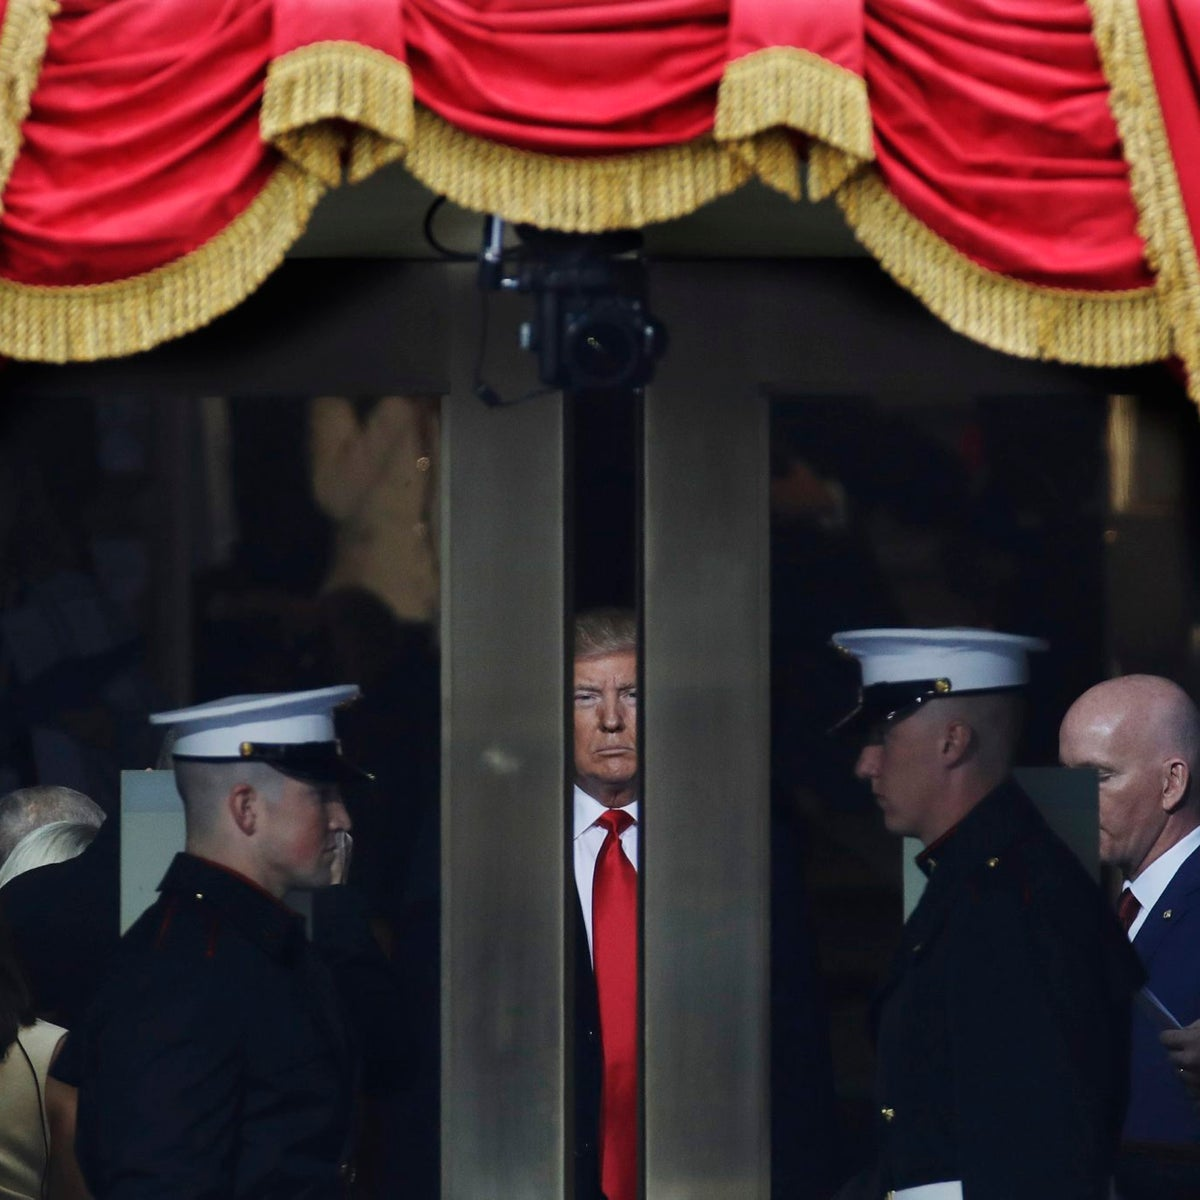 Trump waits to step out onto the portico for his Presidential Inauguration at the U.S. Capitol in Washington, on Jan. 20, 2017.